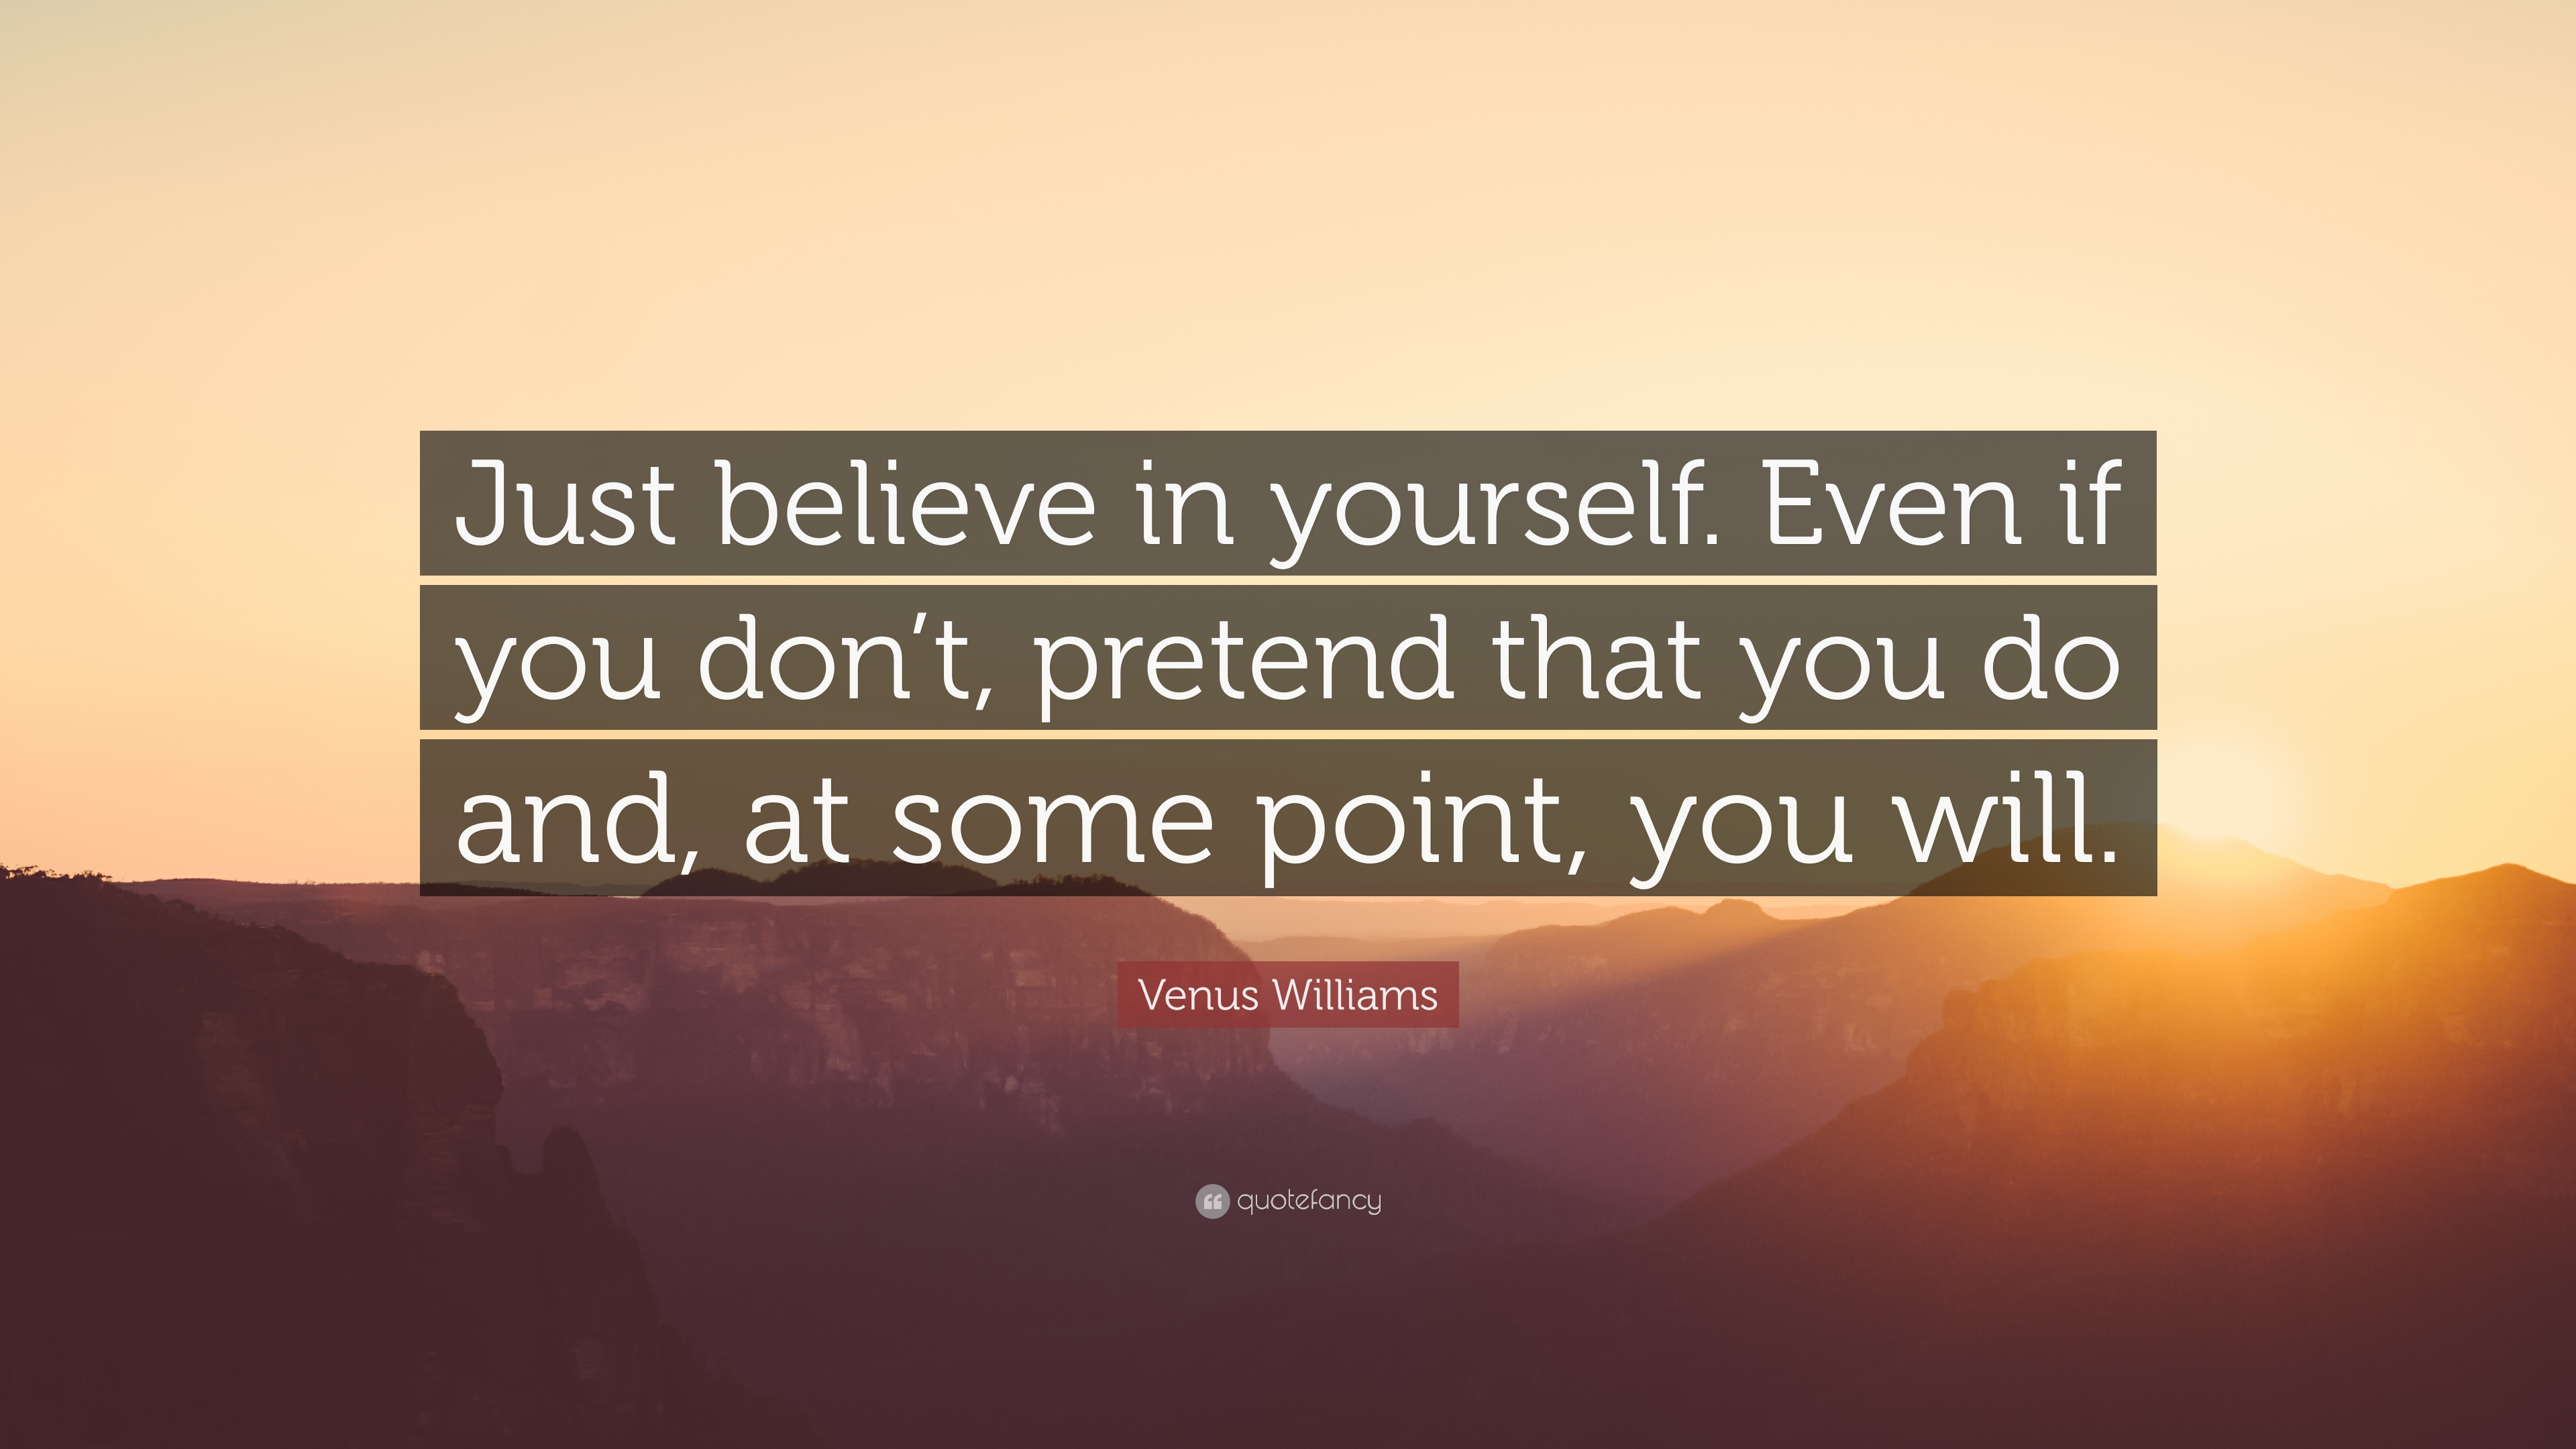 Wallpaper Motivational Quotes 42 Venus Williams Quote Just Believe In Yourself Even If